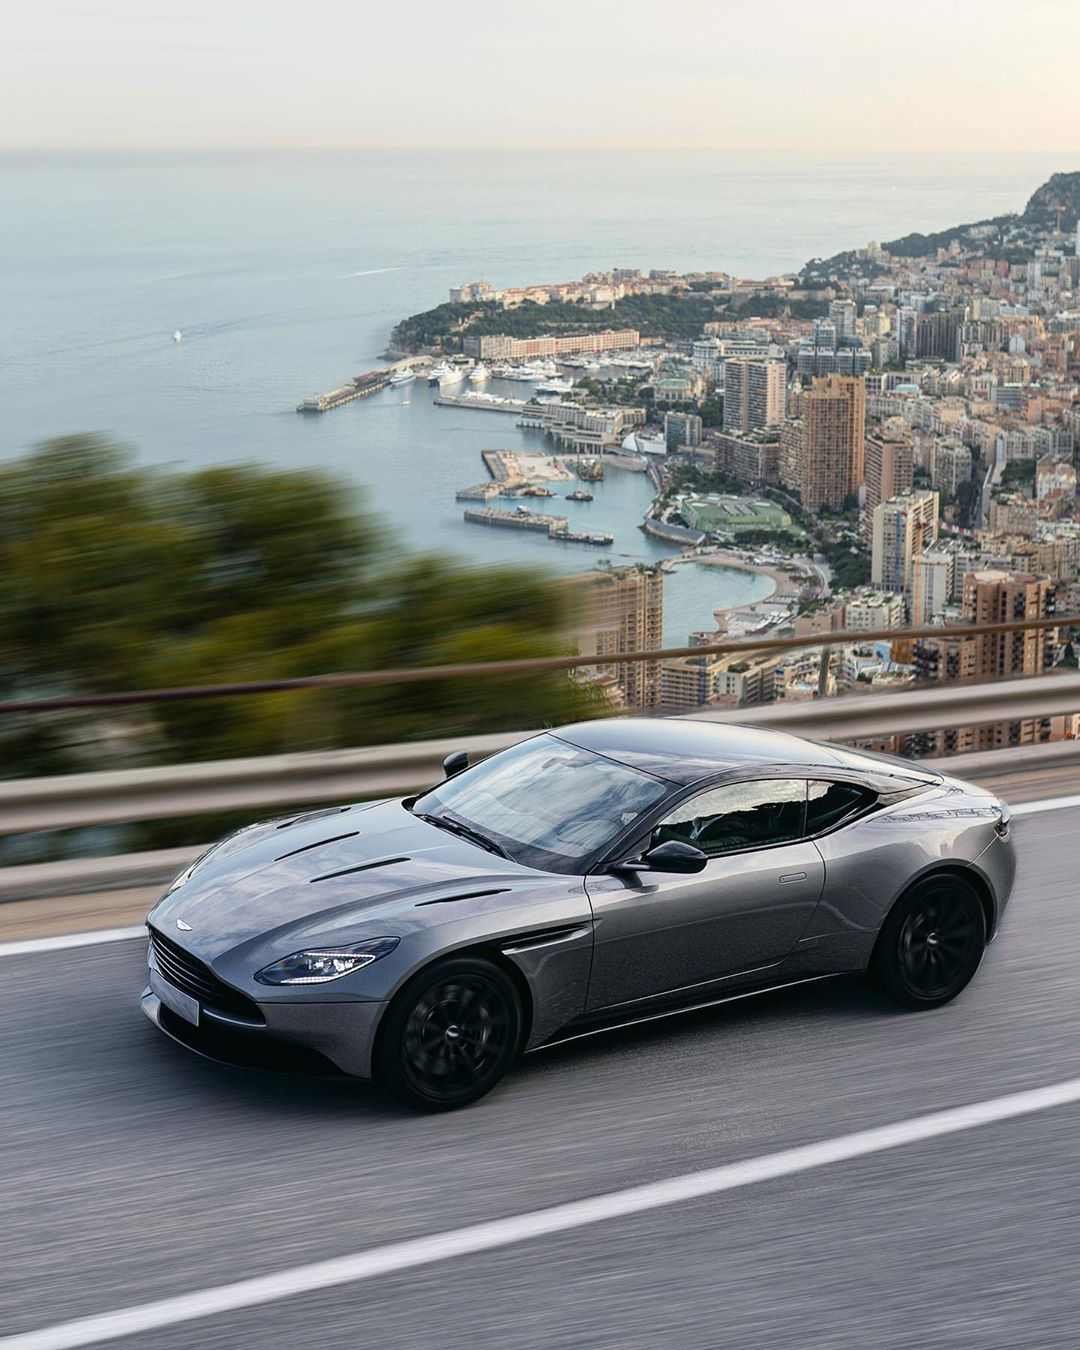 """Tom Claeren • Monte-Carlo on Instagram: """"? Wild yet elegant V12 roaring over Monaco. #DB11AMR, the most powerful DB production model in Aston Martin's history, is fantastic to…"""""""